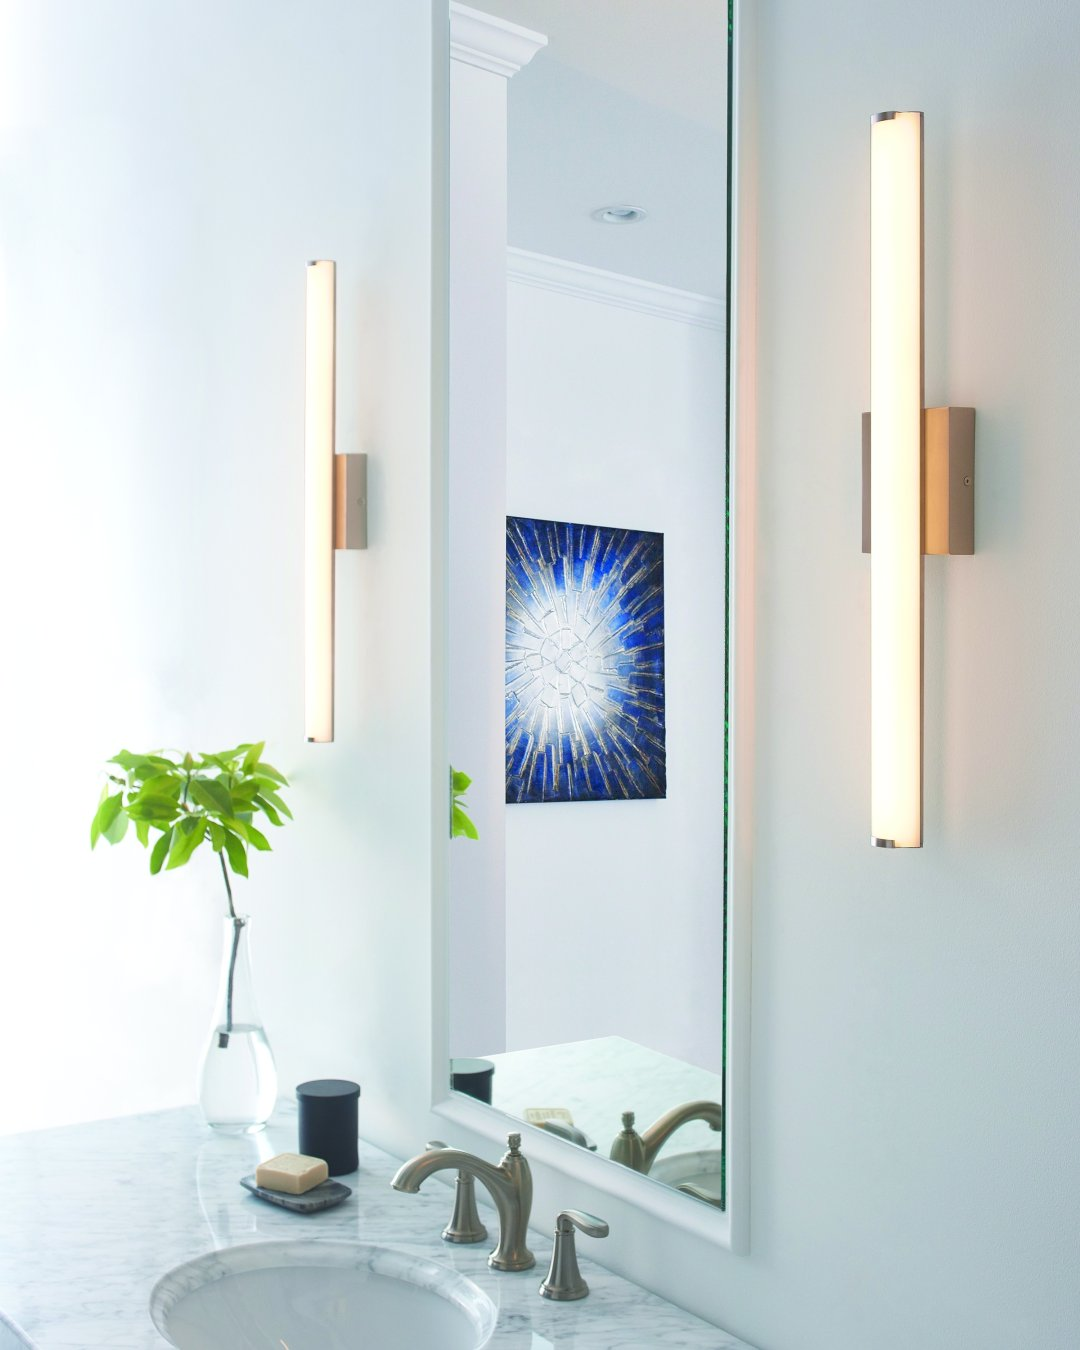 Bathroom Lighting Ideas | 3 Tips for Better Bath Lighting at ...